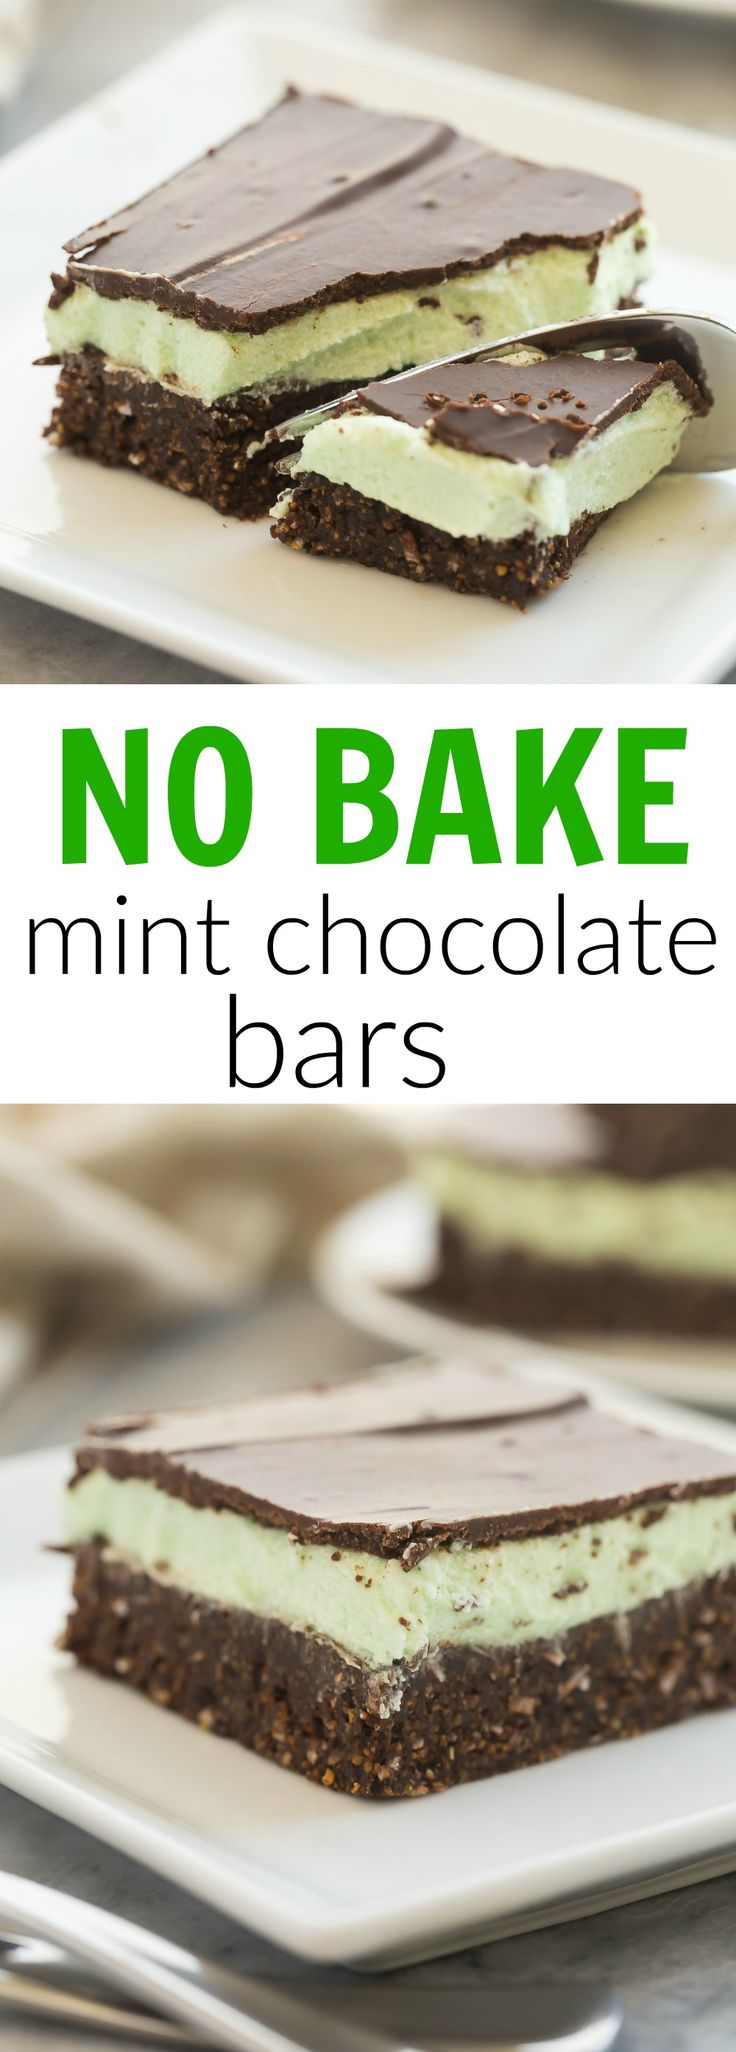 No Bake Mint Chocolate Bars Recipe Mint Frosting